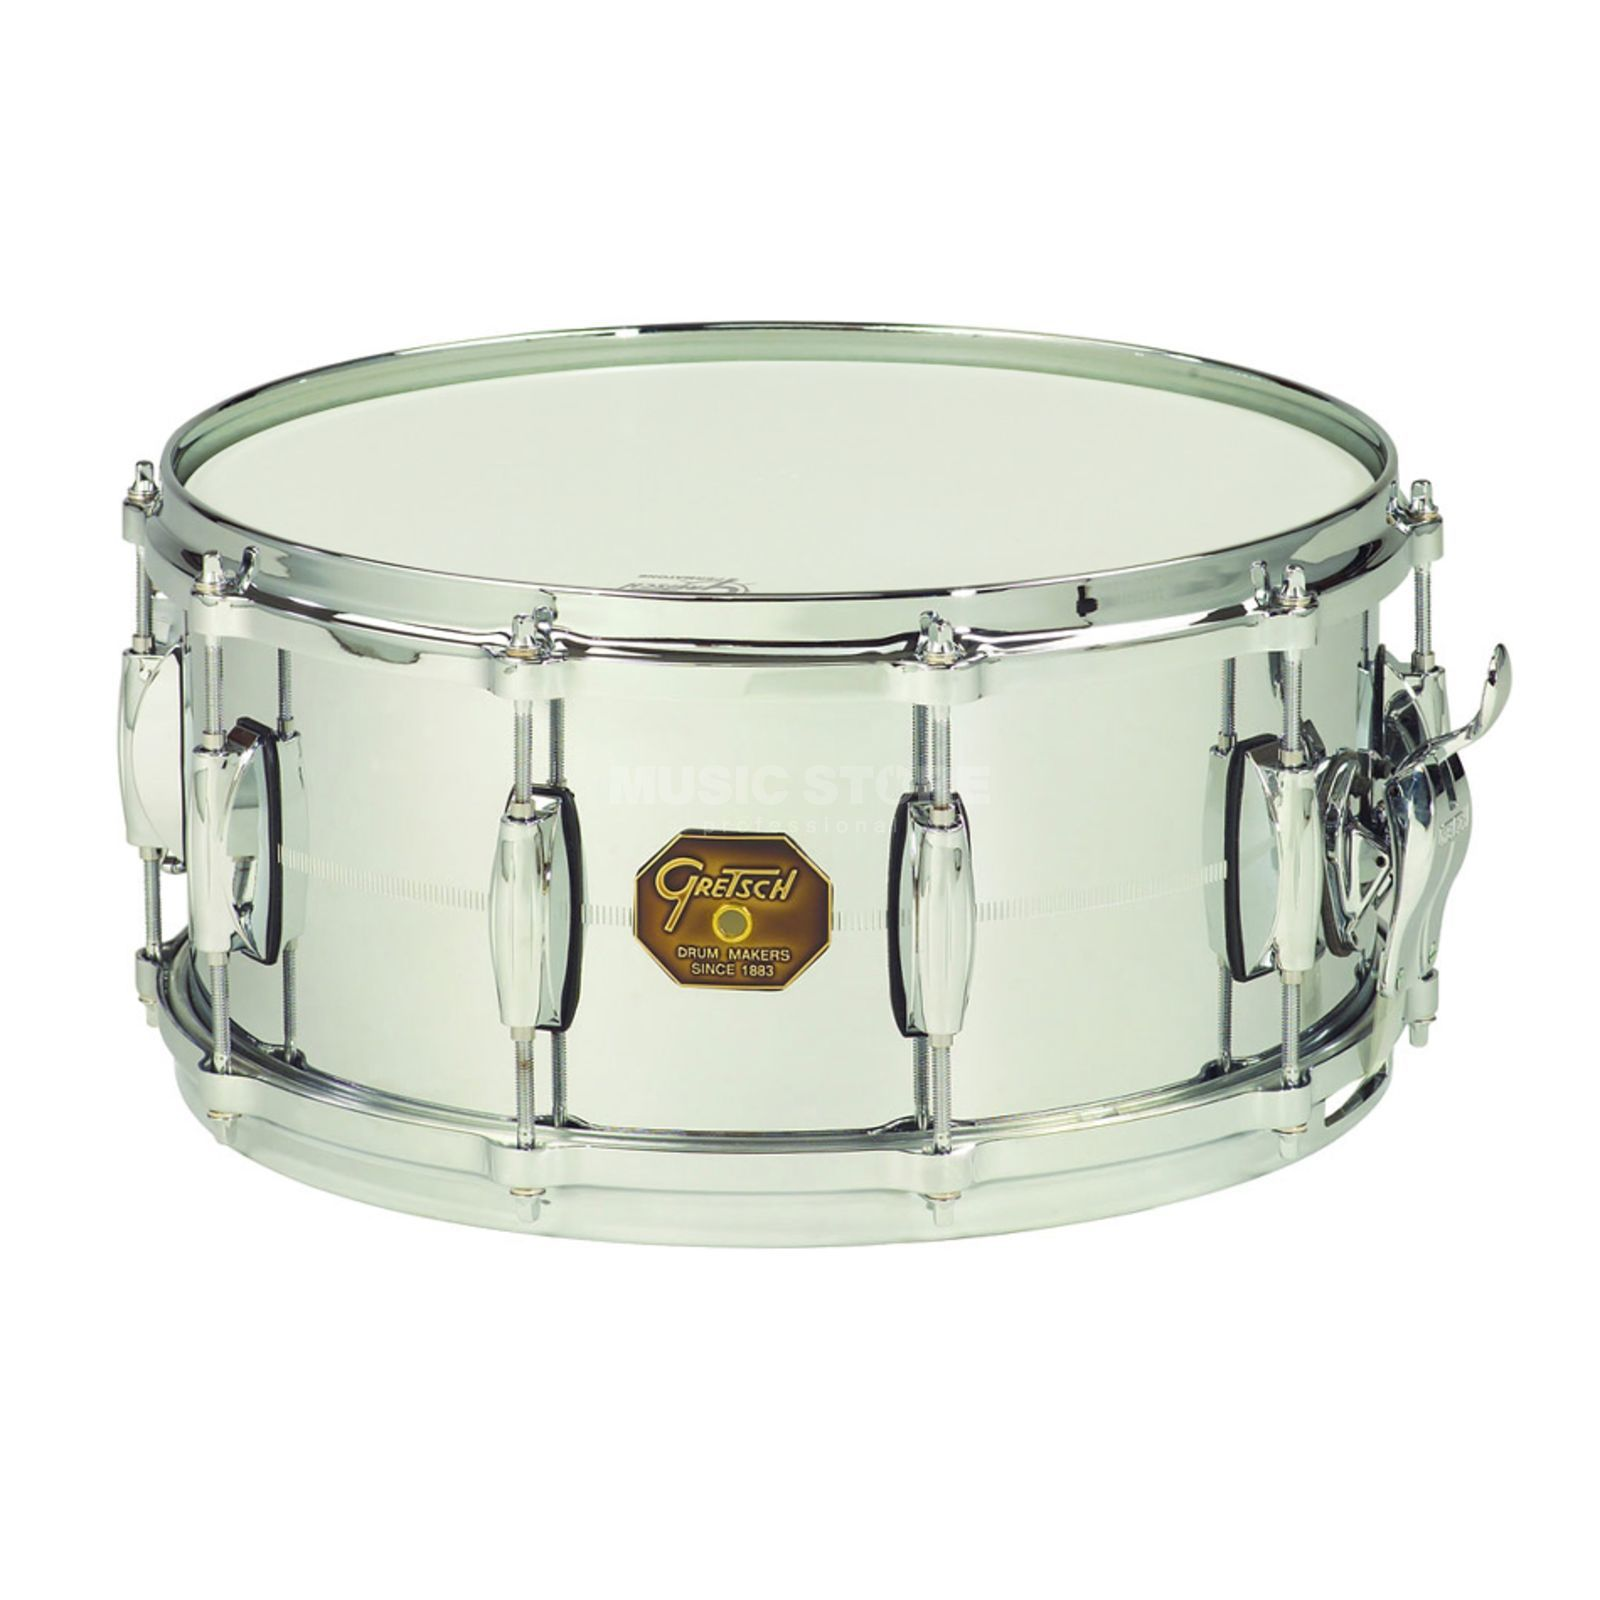 "Gretsch USA G4000 Snare G4164, 14""x6,5"", Chrome over Brass Produktbild"